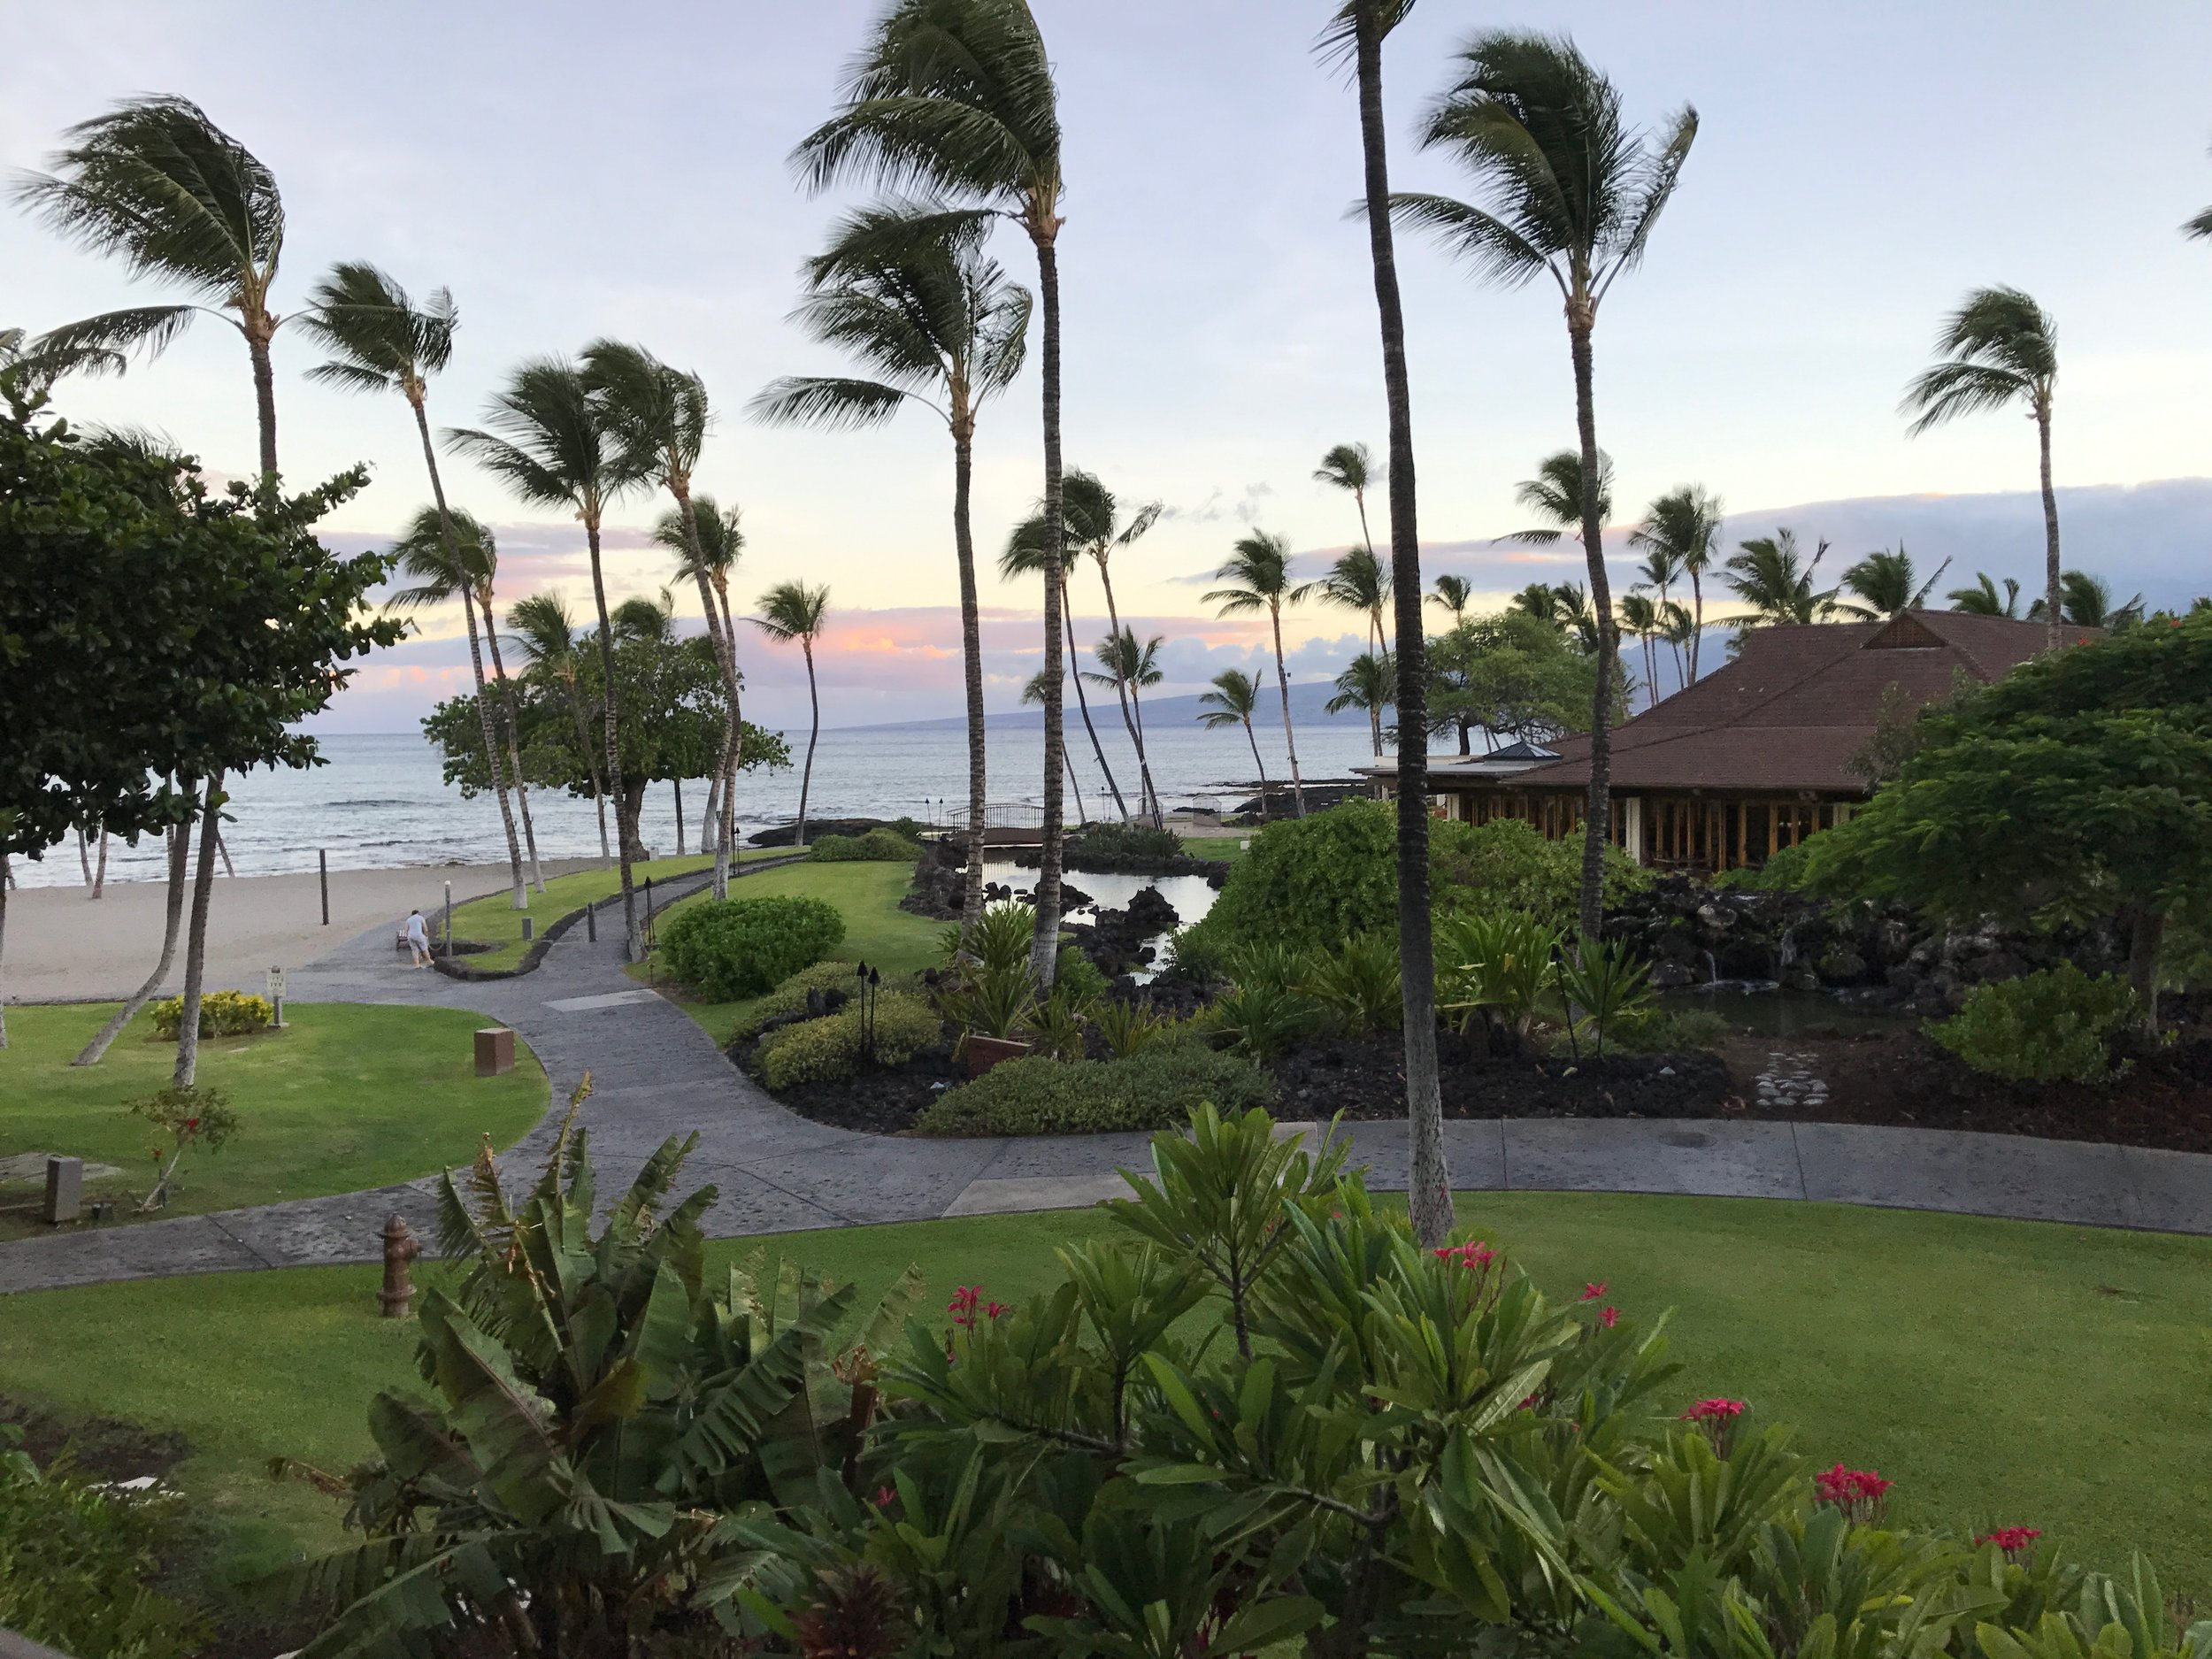 """""""Good Morning, World!"""" The view from my room in Hawai'i. Yeah, I know... I took part in an international photographers mastermind group. You probably wouldn't believe it was """"all work and no play for me"""".  THAT  was poor planning on my part."""